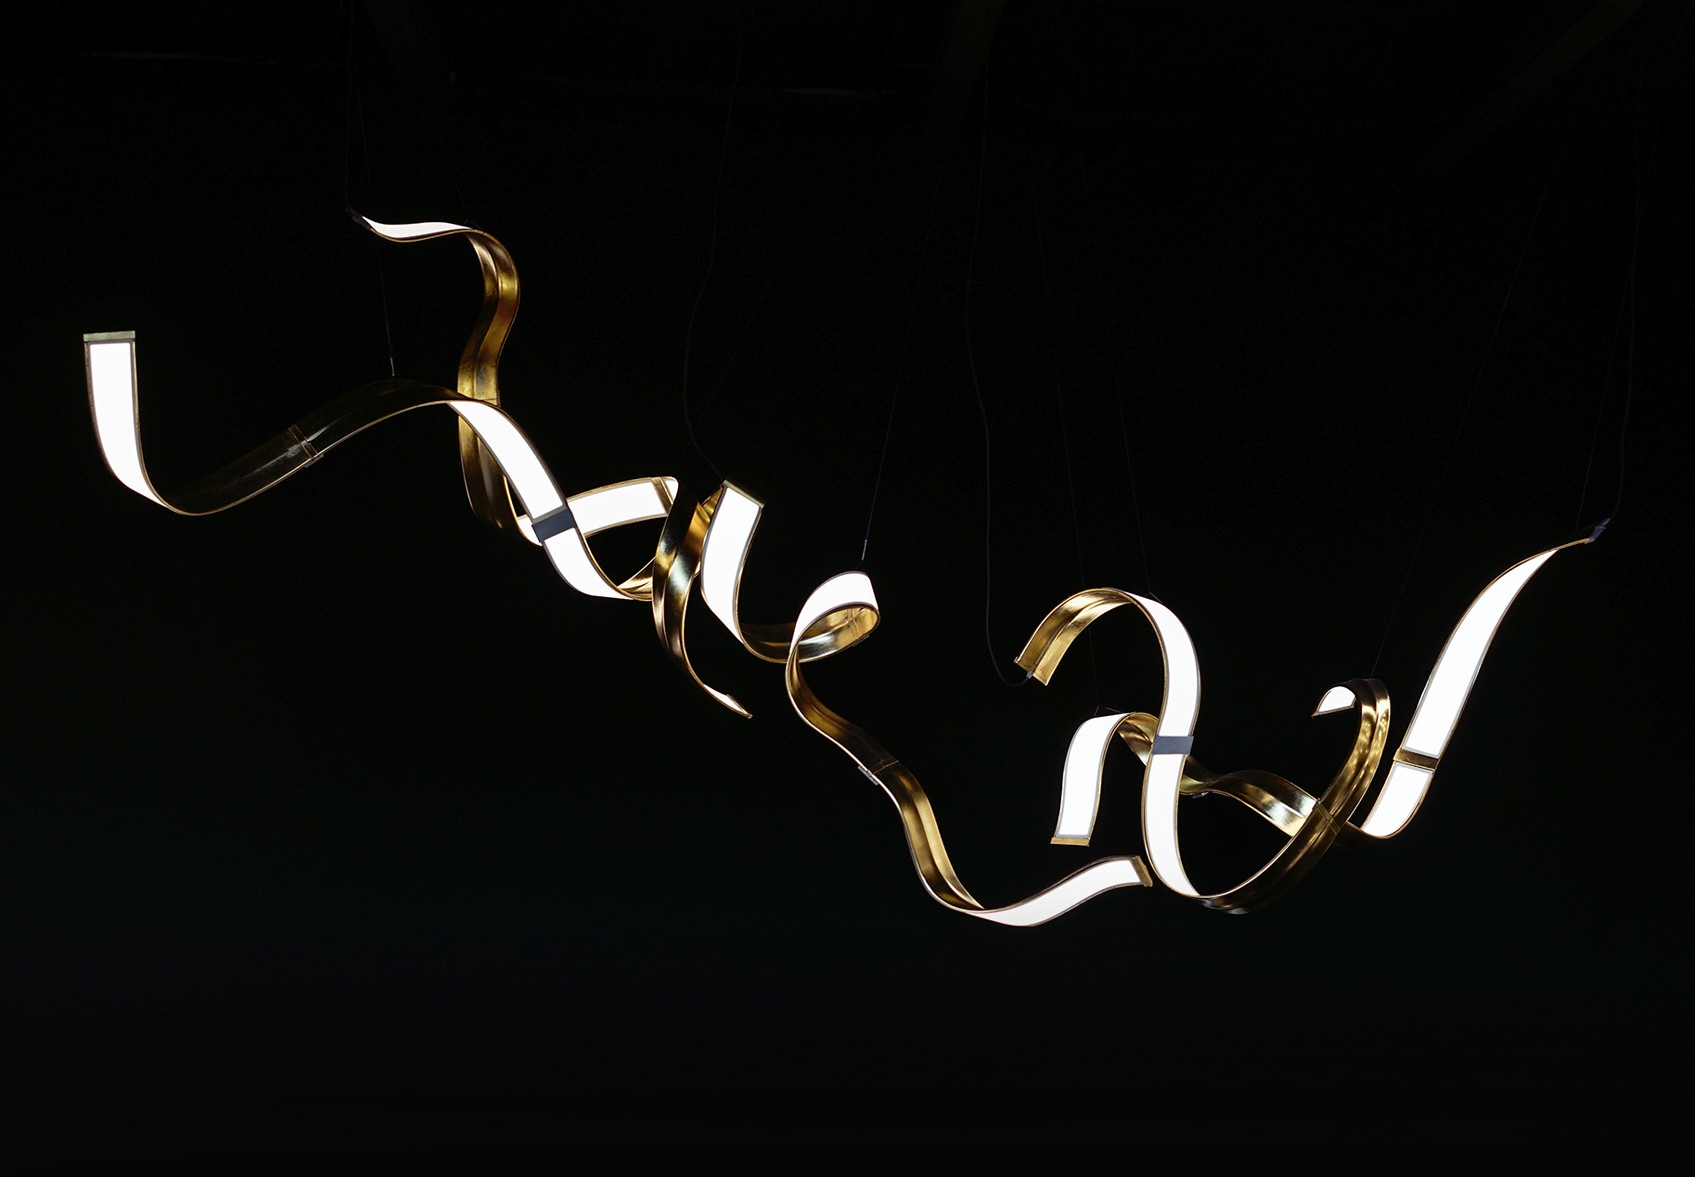 OLED DESIGN Archives | OLED ART MAGAZINE